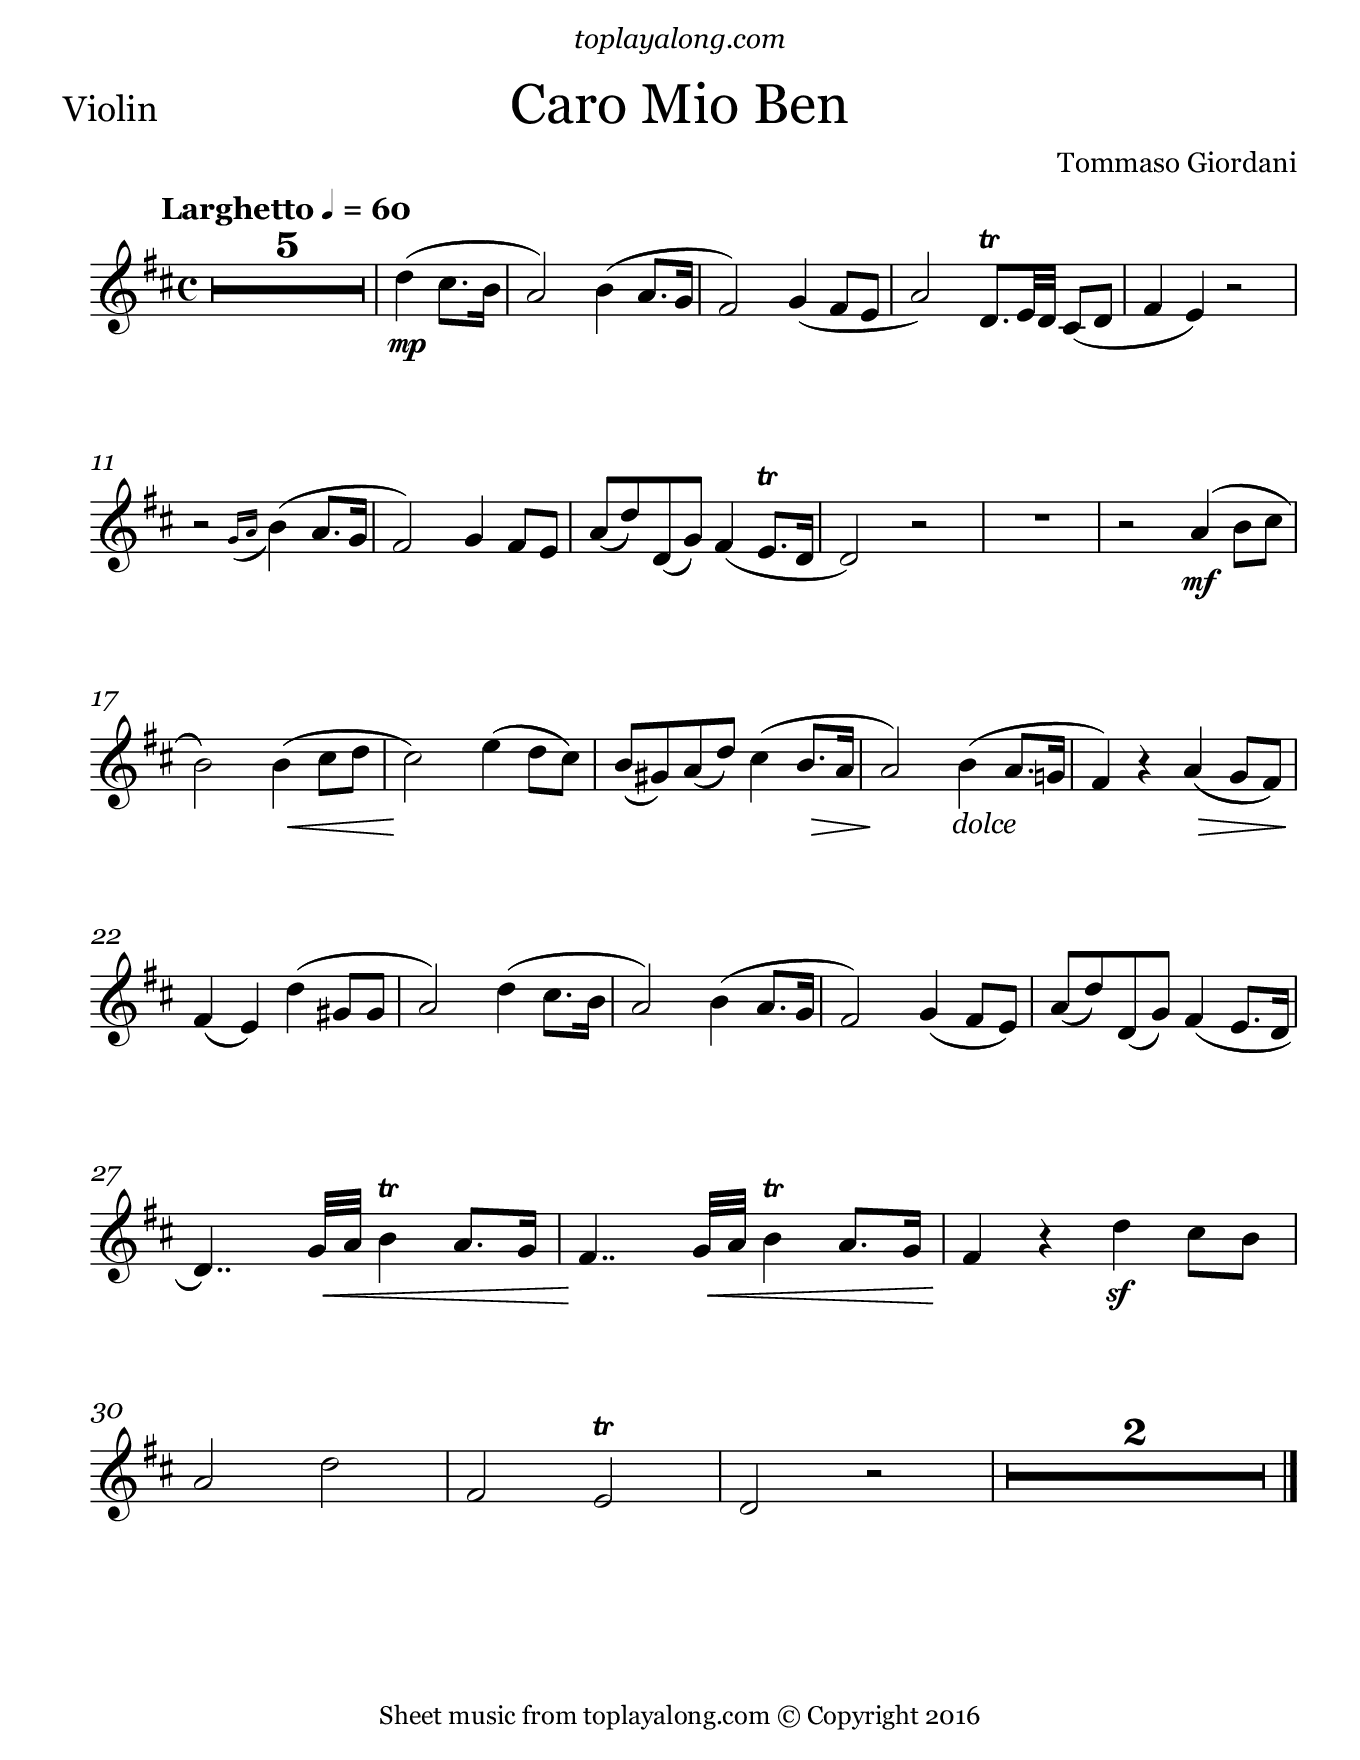 Caro mio ben by Giordani. Sheet music for Violin, page 1.